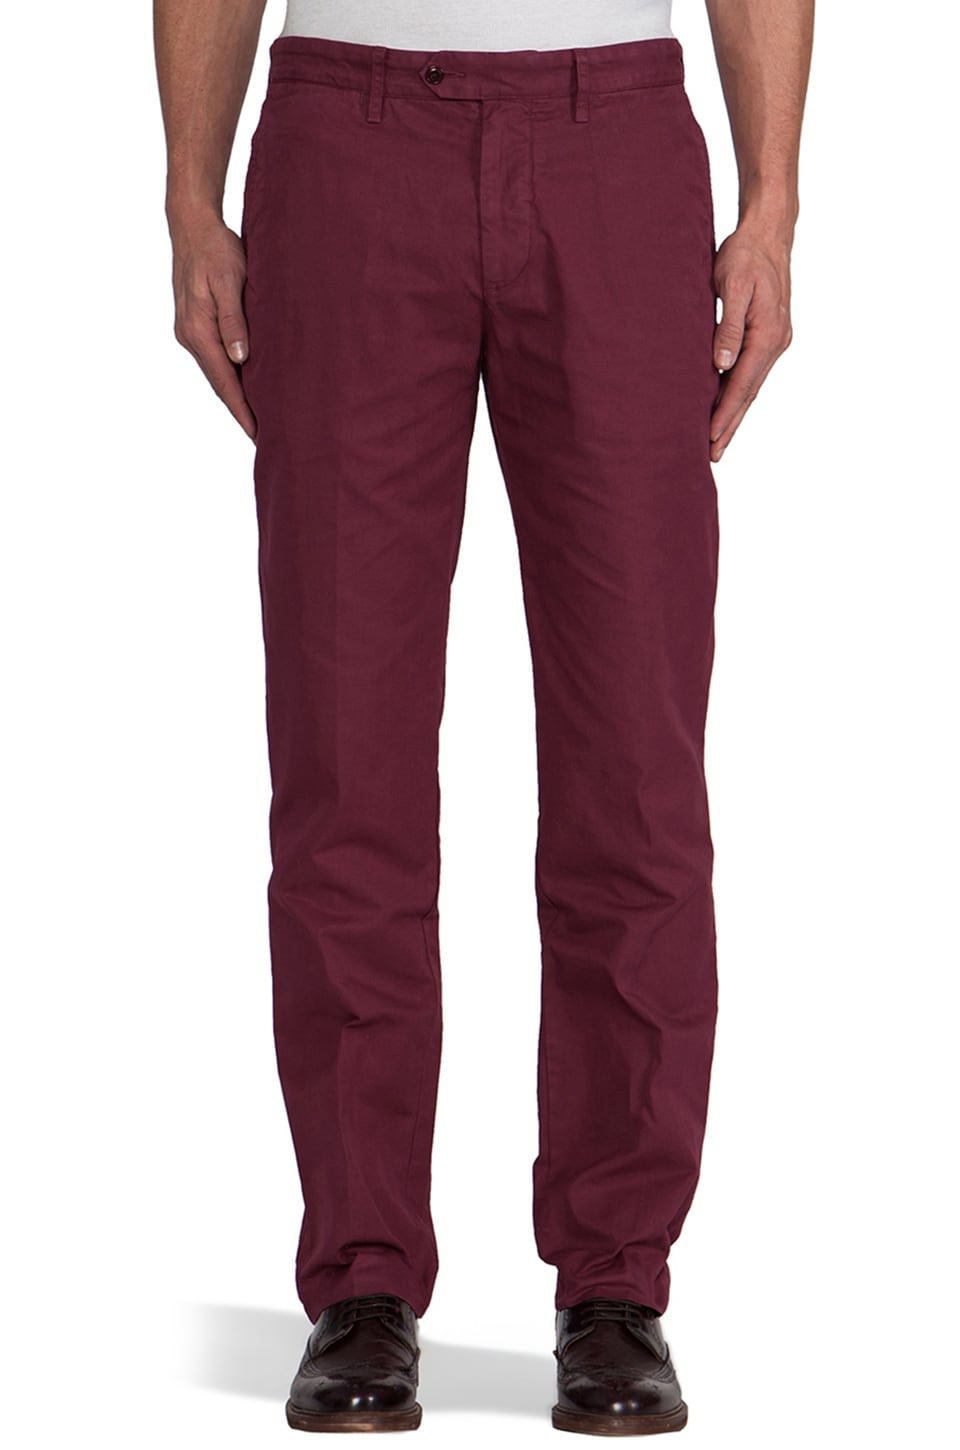 TODD SNYDER Trouser Chino in Maroon